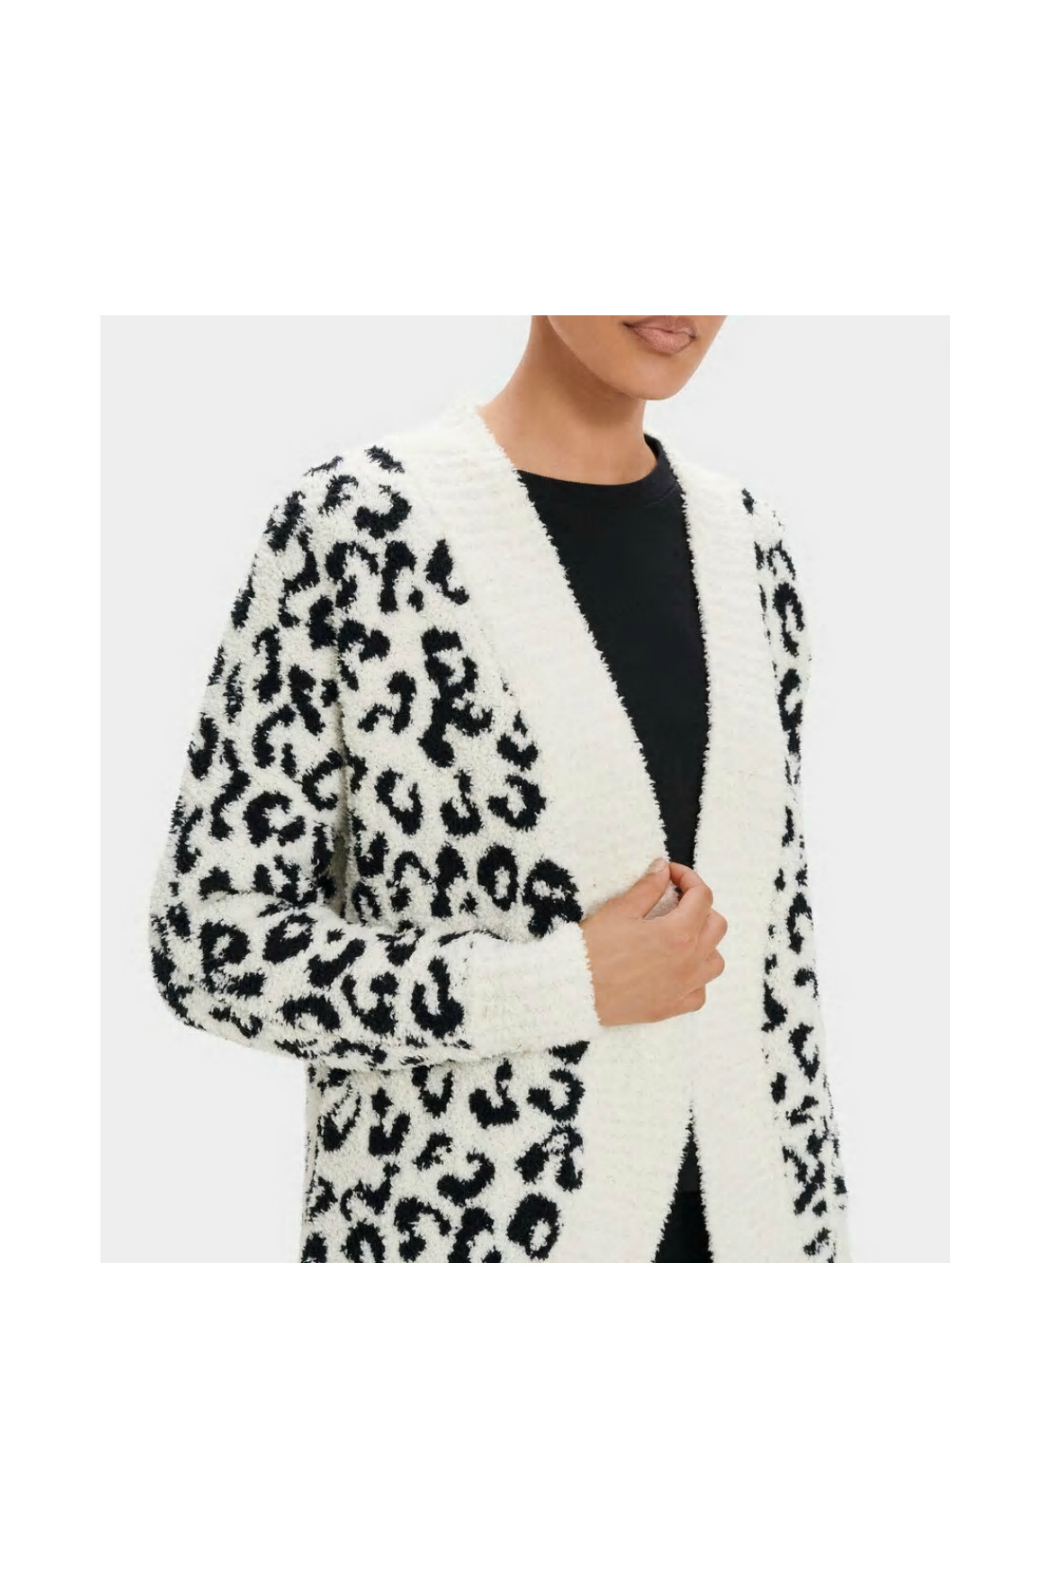 Ugg FREEMONT FLUFFY KNIT CARDIGAN - Side Cropped Image